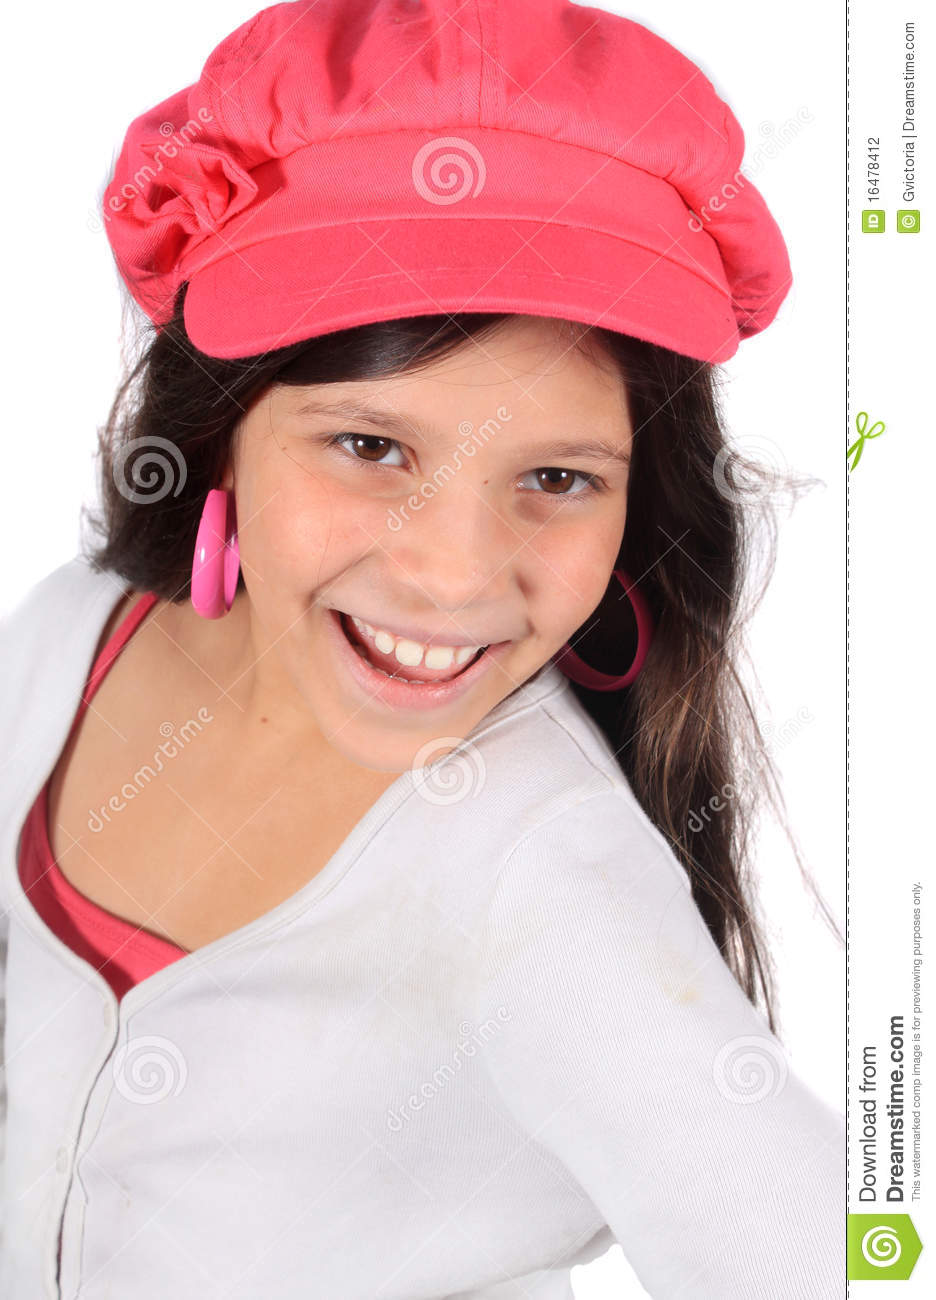 8 Year Boy Bedroom Design: Pretty Eight Year Old Girl Stock Photo. Image Of Cute